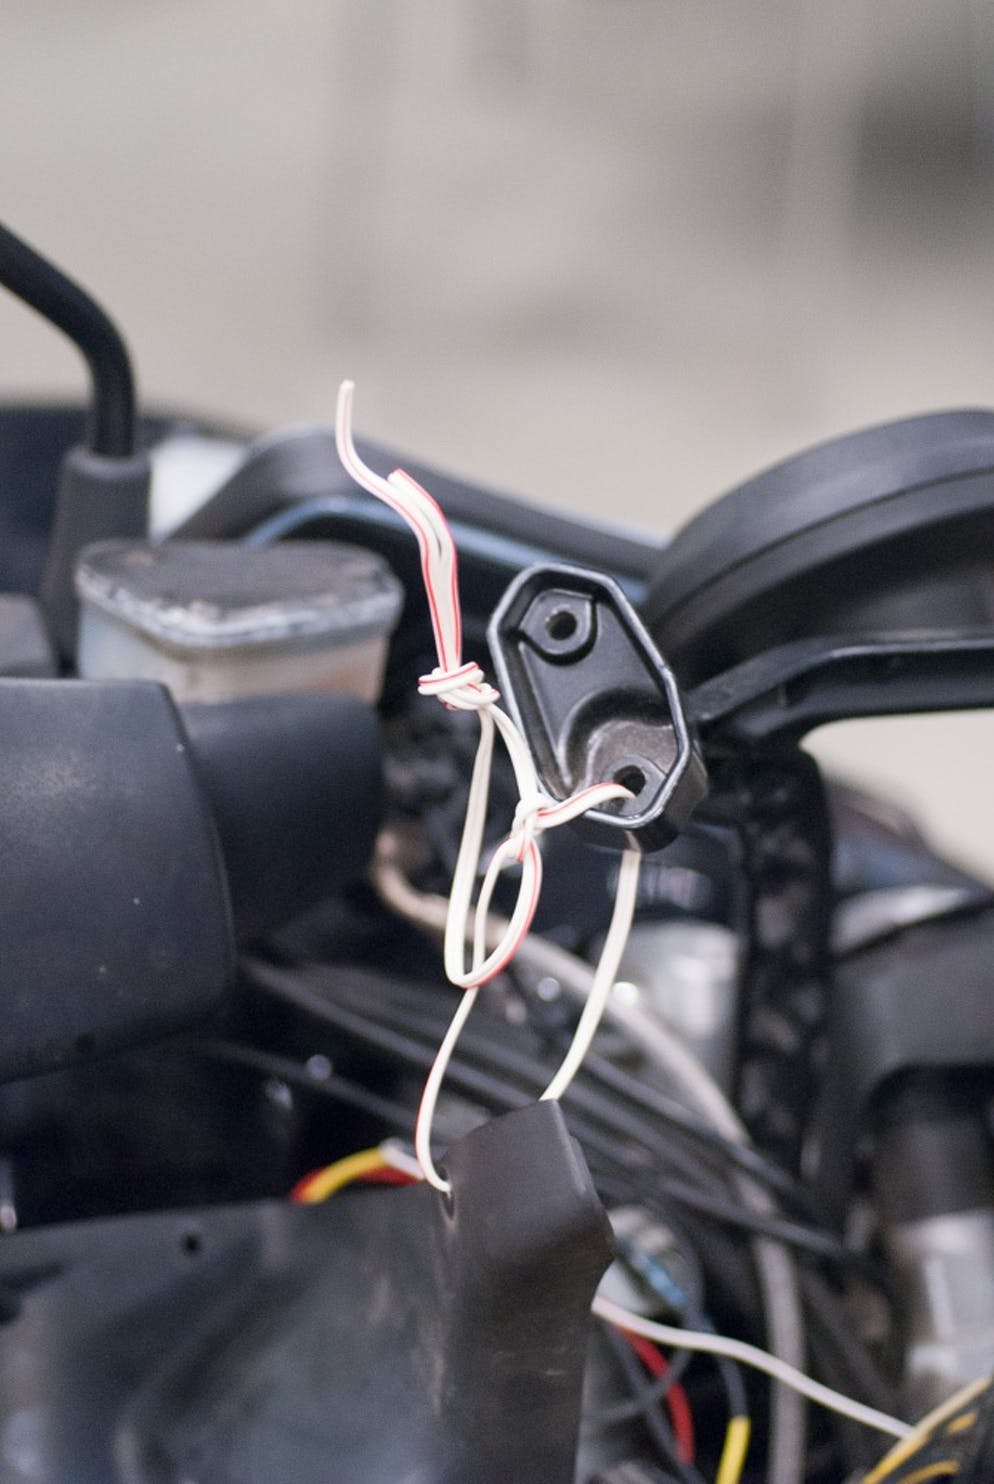 How To Tips For Installing Auxiliary Lights On Your Motorcycle Wiring Up Led Work Use Quality Stranded Wire Actual Electrical Because Subpar Might